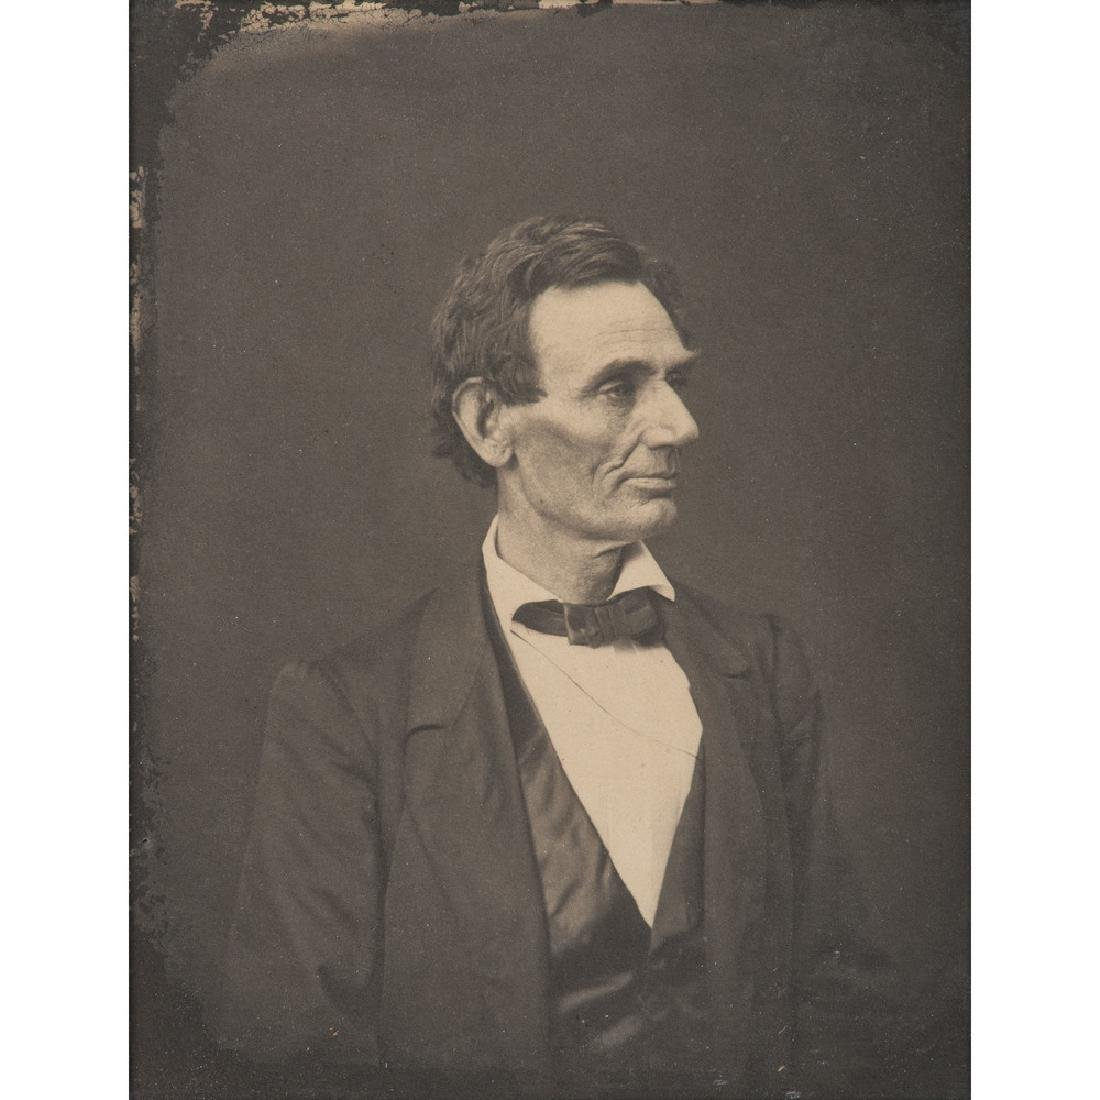 Abraham Lincoln, Fine Photograph Printed by Ayres from